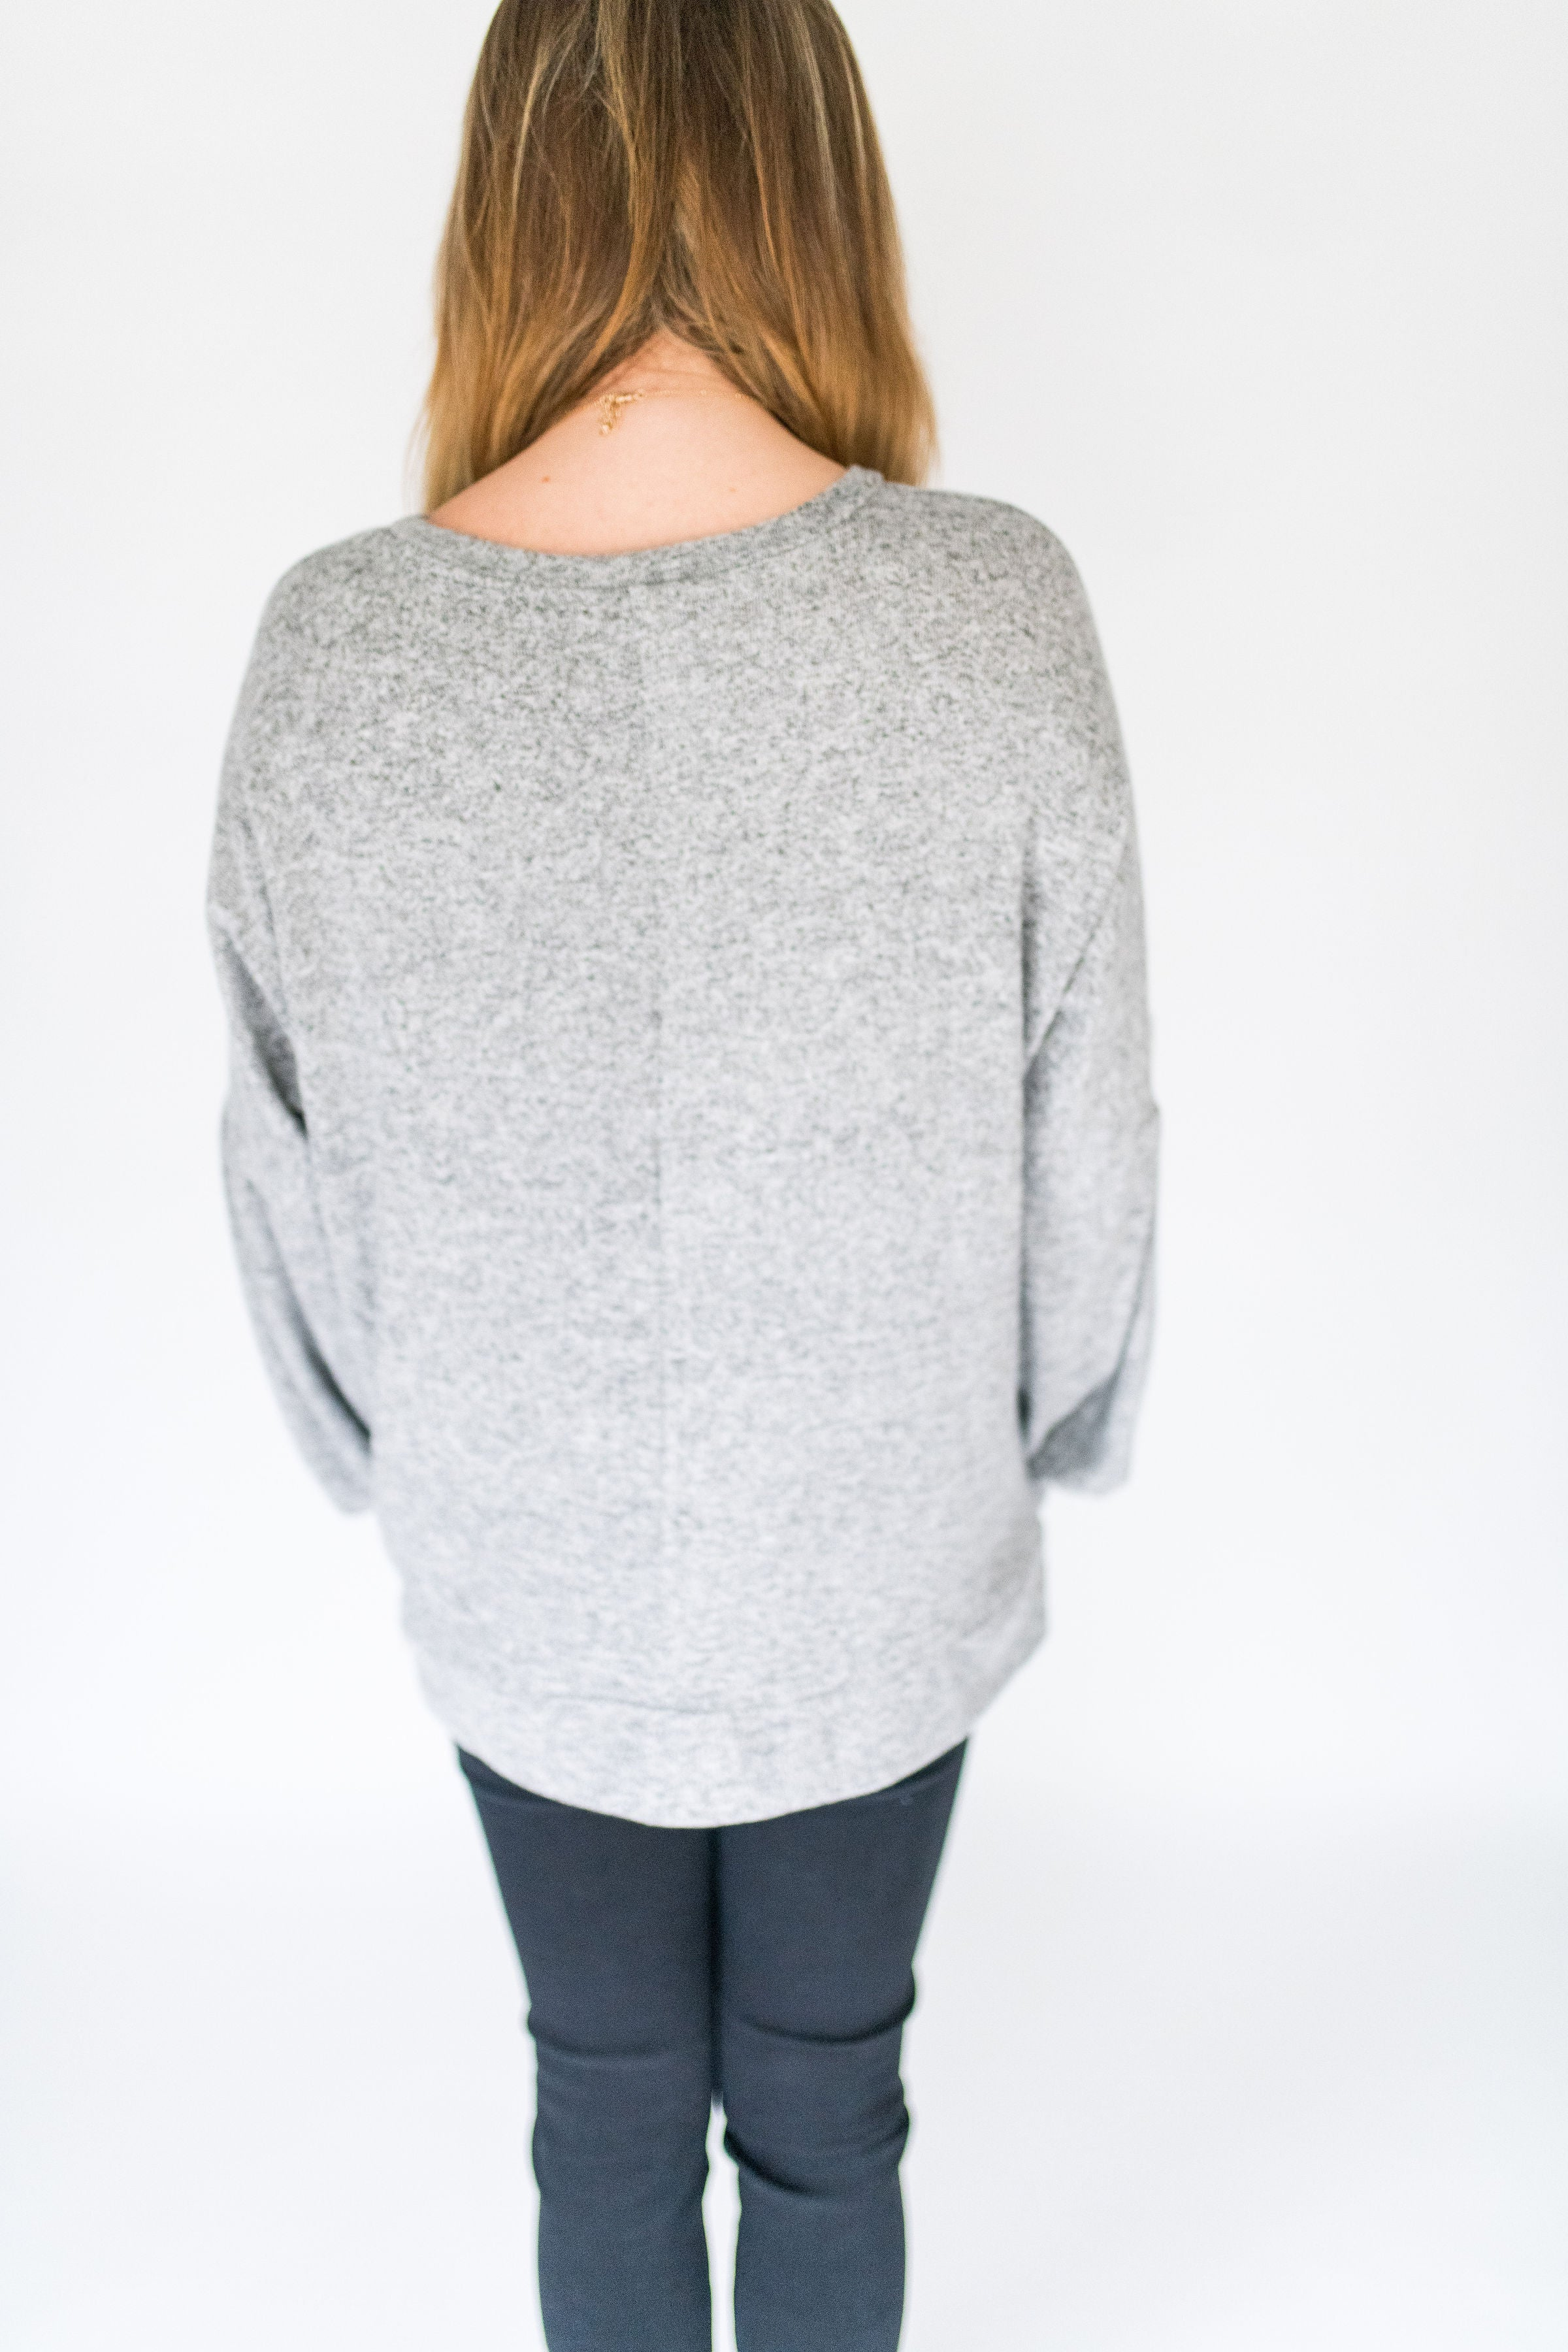 Cloudy Skies Ultra Soft Pullover Sweater:  Silver